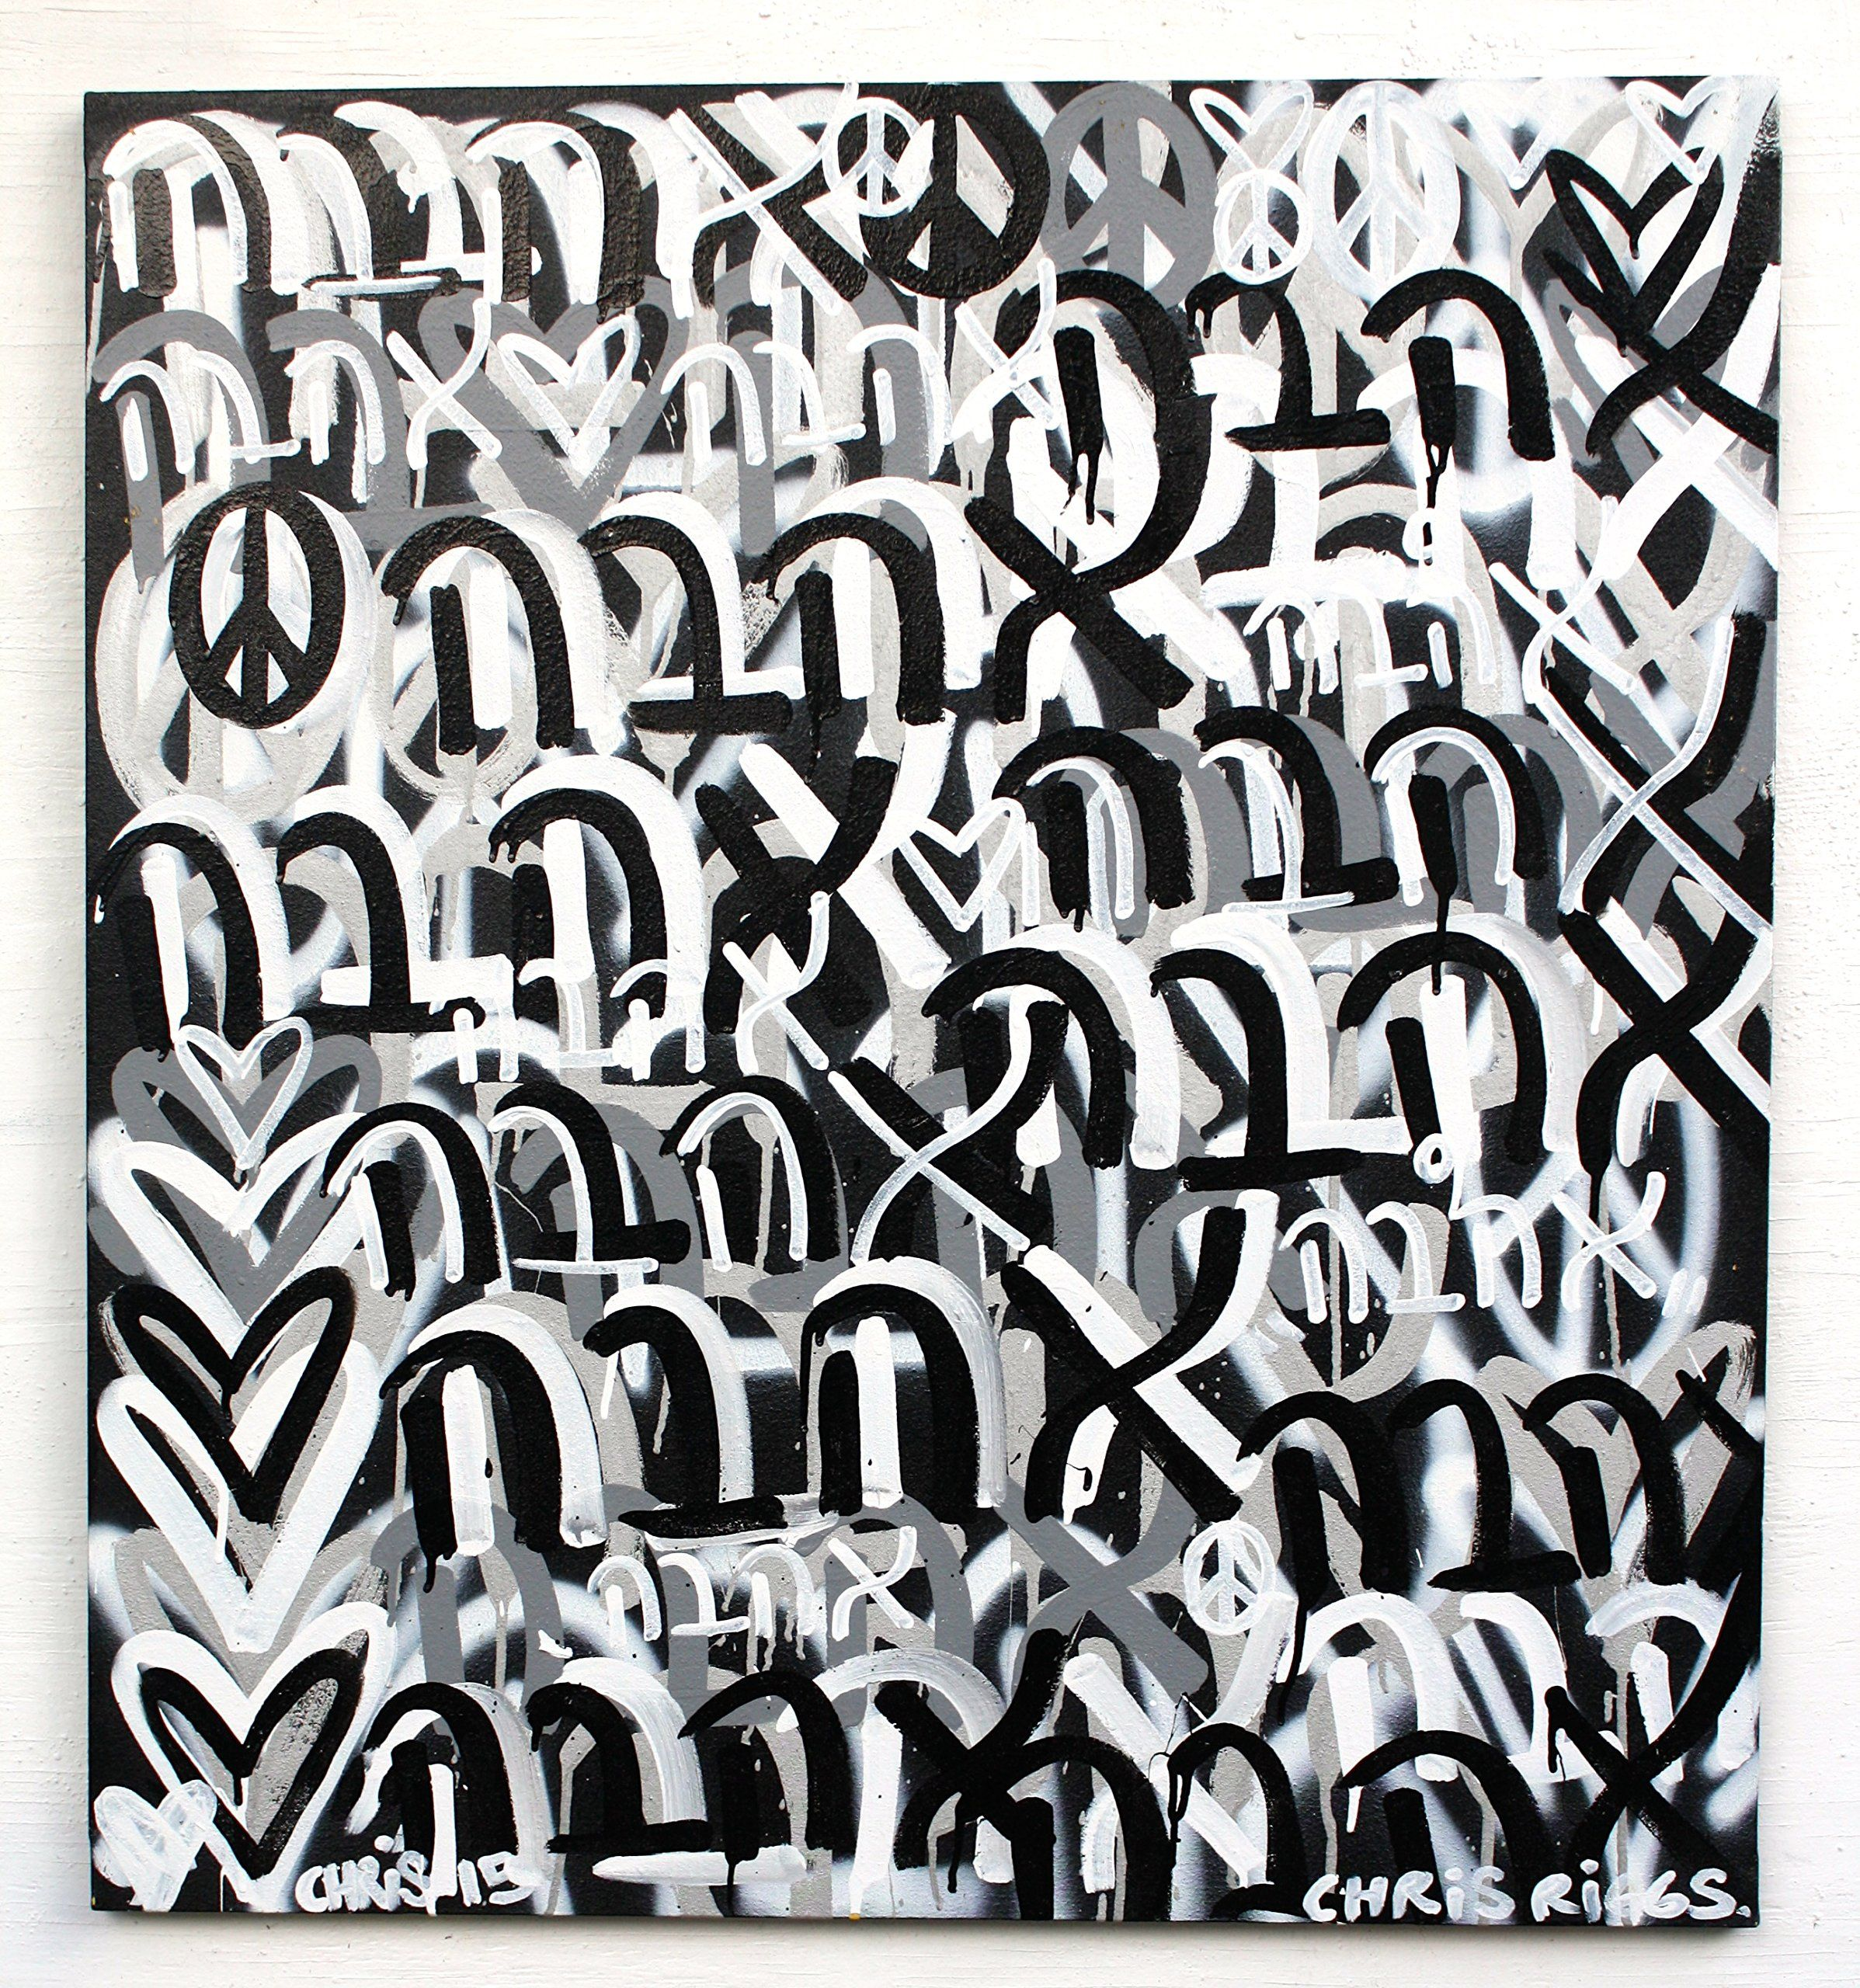 """FREE SHIPPING Hebrew love peace 39"""" x 36"""" hanukkah spray painting original signed street art modern contemporary fine art nyc Chris Riggs art. This painting is 39"""" x 36"""" inches.This is an original painting made by Chris Riggs for mayor. The painting is signed and dated it comes with a certificate of authenticity. Great for a home, office, gallery, museum, gift, or as an investment. His paintings and sculptures are in museums, galleries, and private collections in over 50 countries. Chris..."""